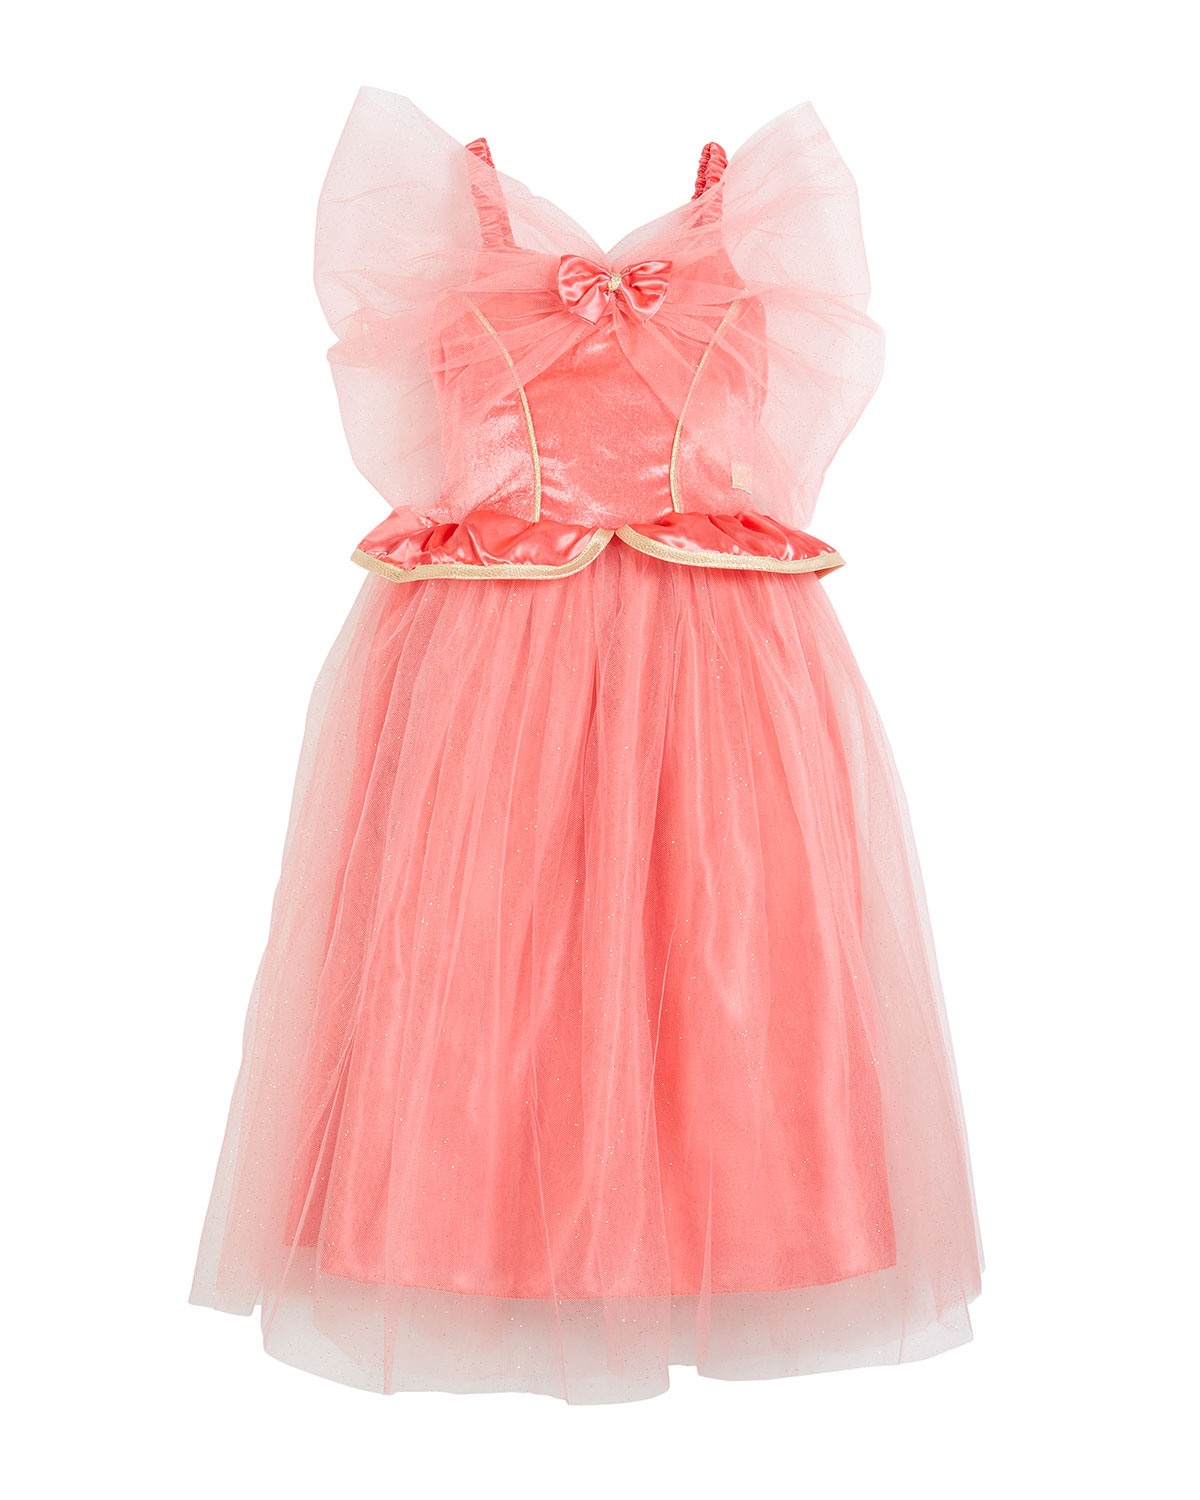 Kids Olivia Fairy Dress Costume 57 Years